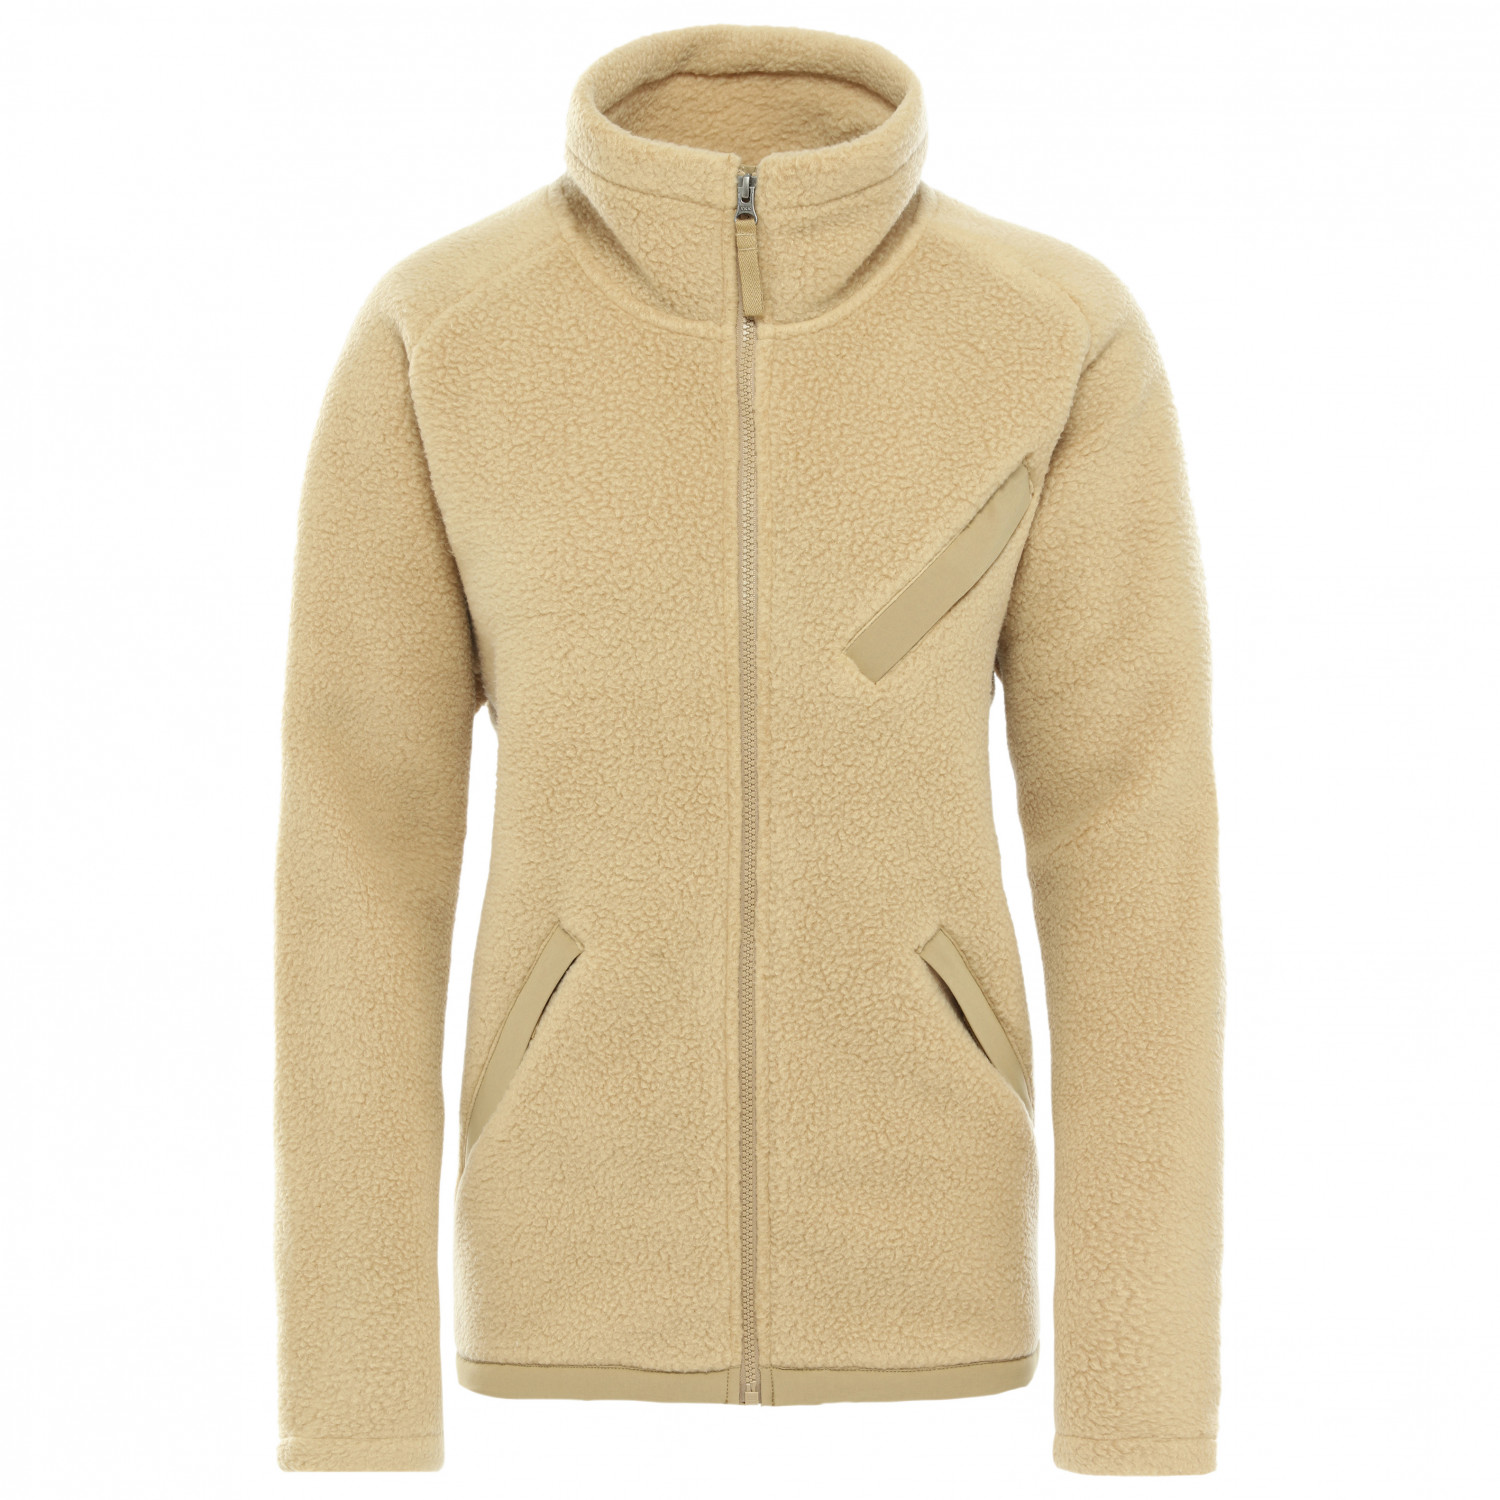 The North Face Cragmont Fleece FullZip Jacket Fleecejakke